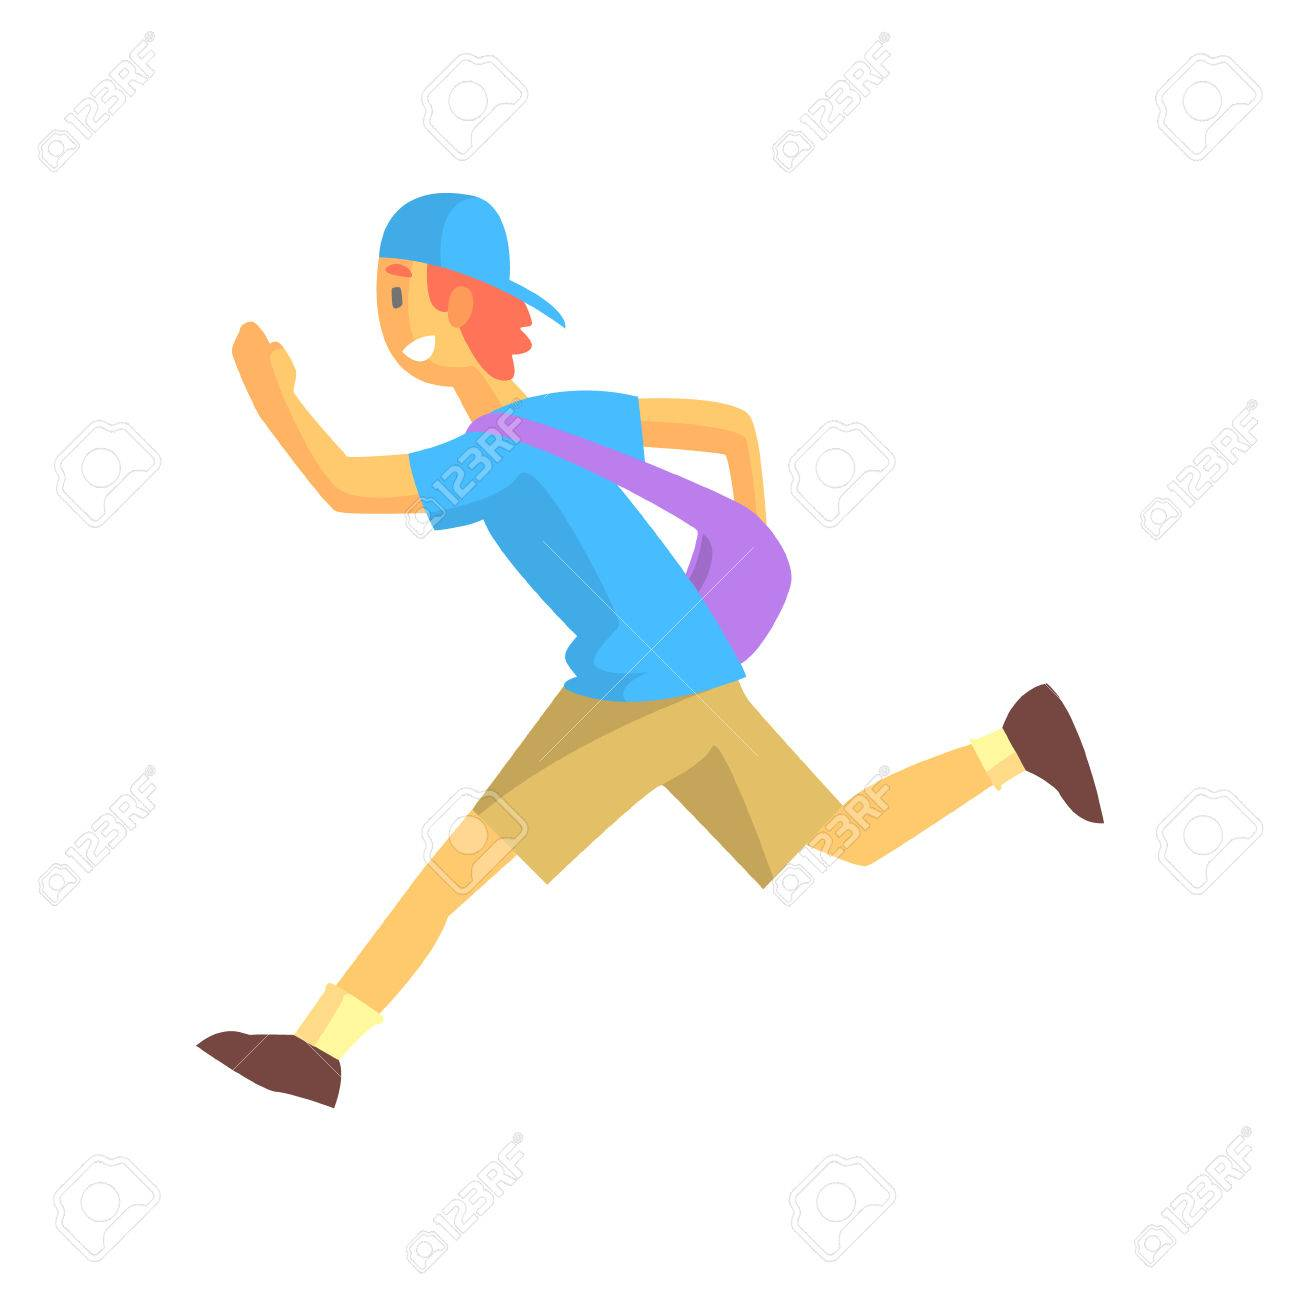 Express Mail Postman Guy Running Graphic Design Cool Geometric Style Isolated Drawing On White Background